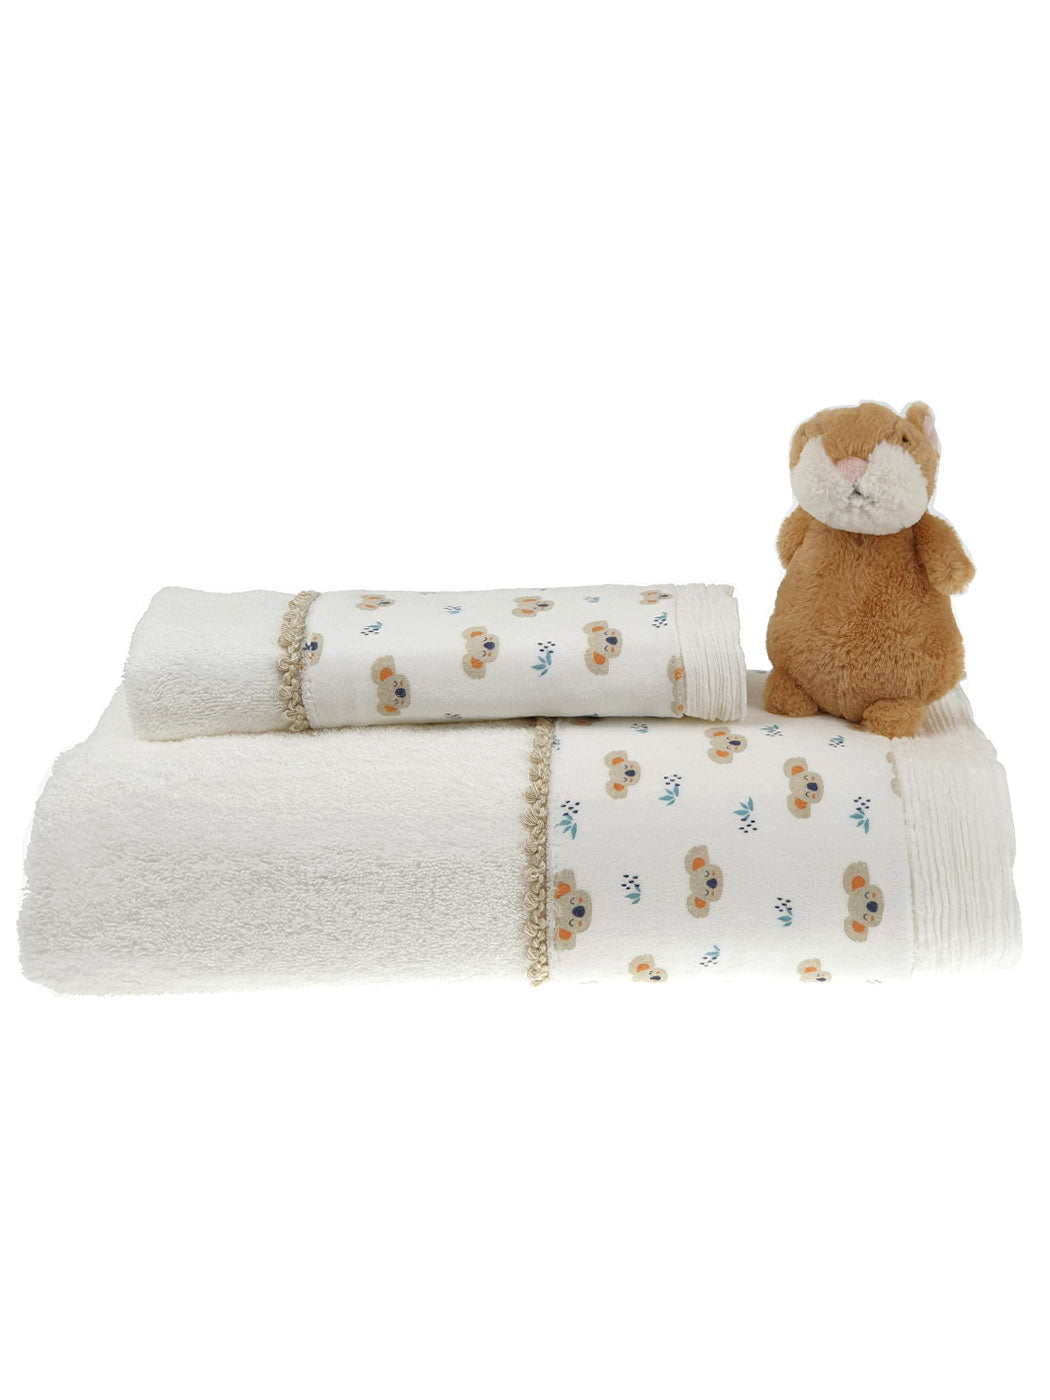 ROY Baby Towels 2pcs